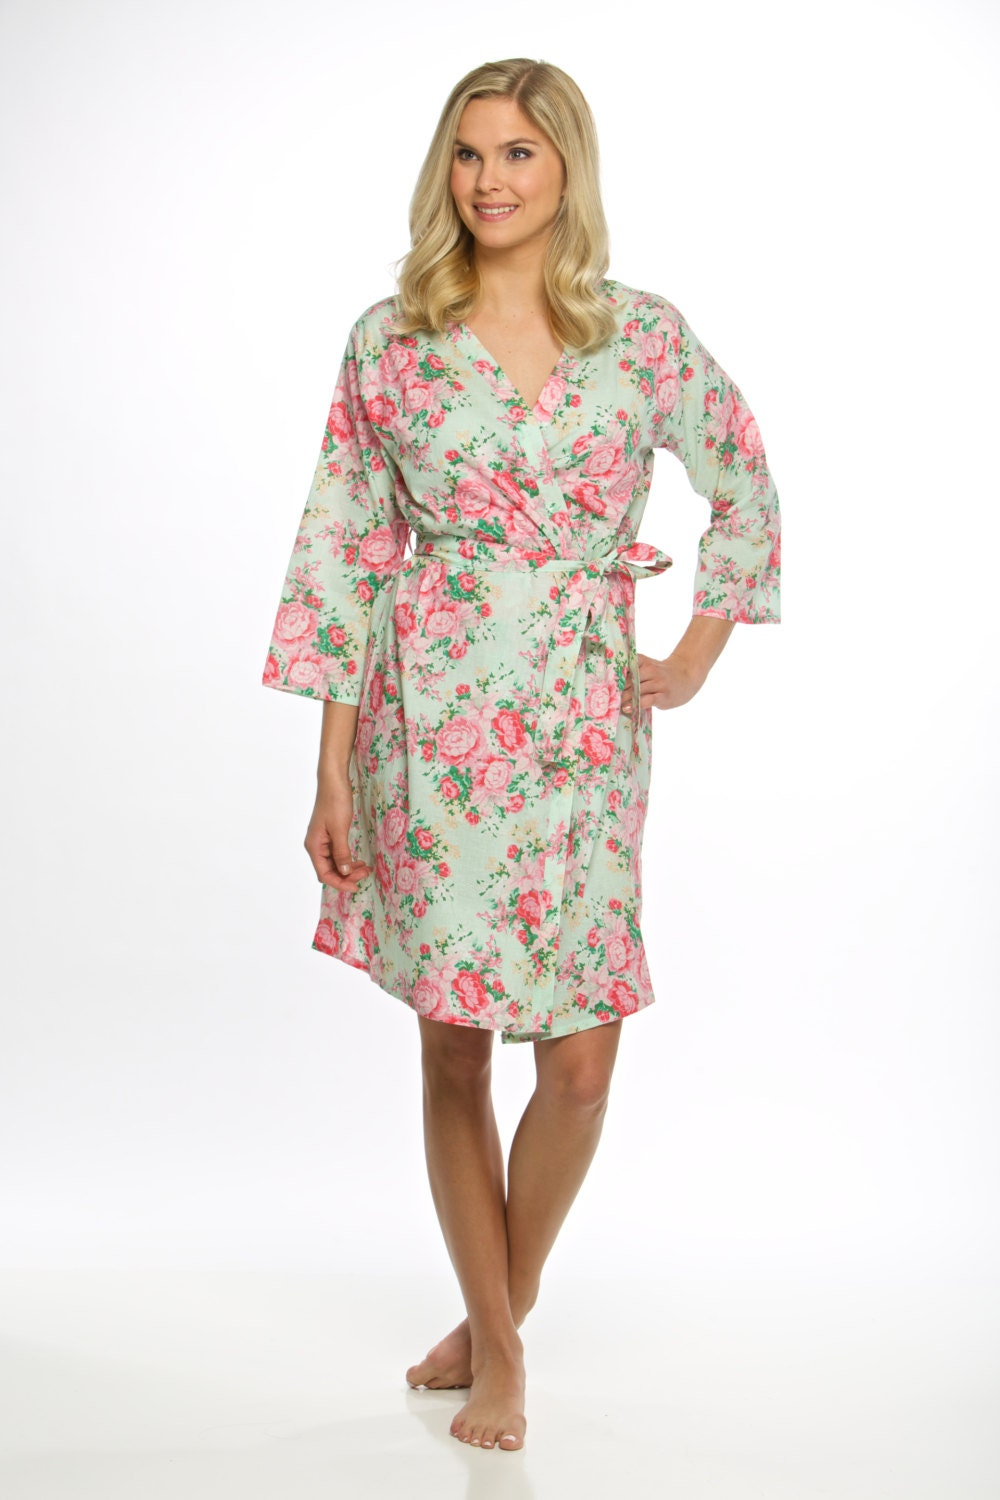 cotton floral bridesmaid robes free fast delivery wedding